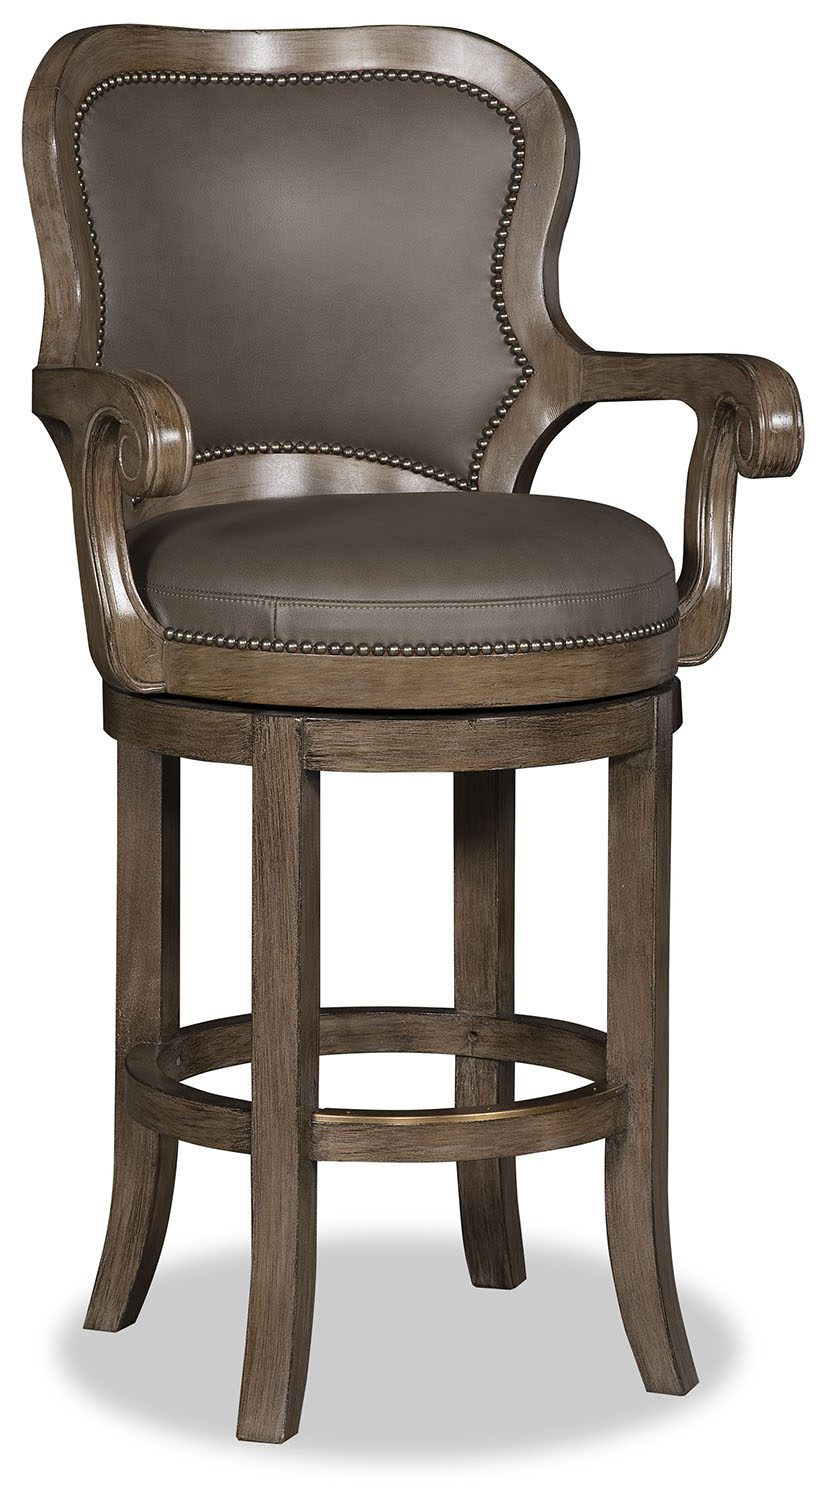 1910 BAR SWIVEL – NATE